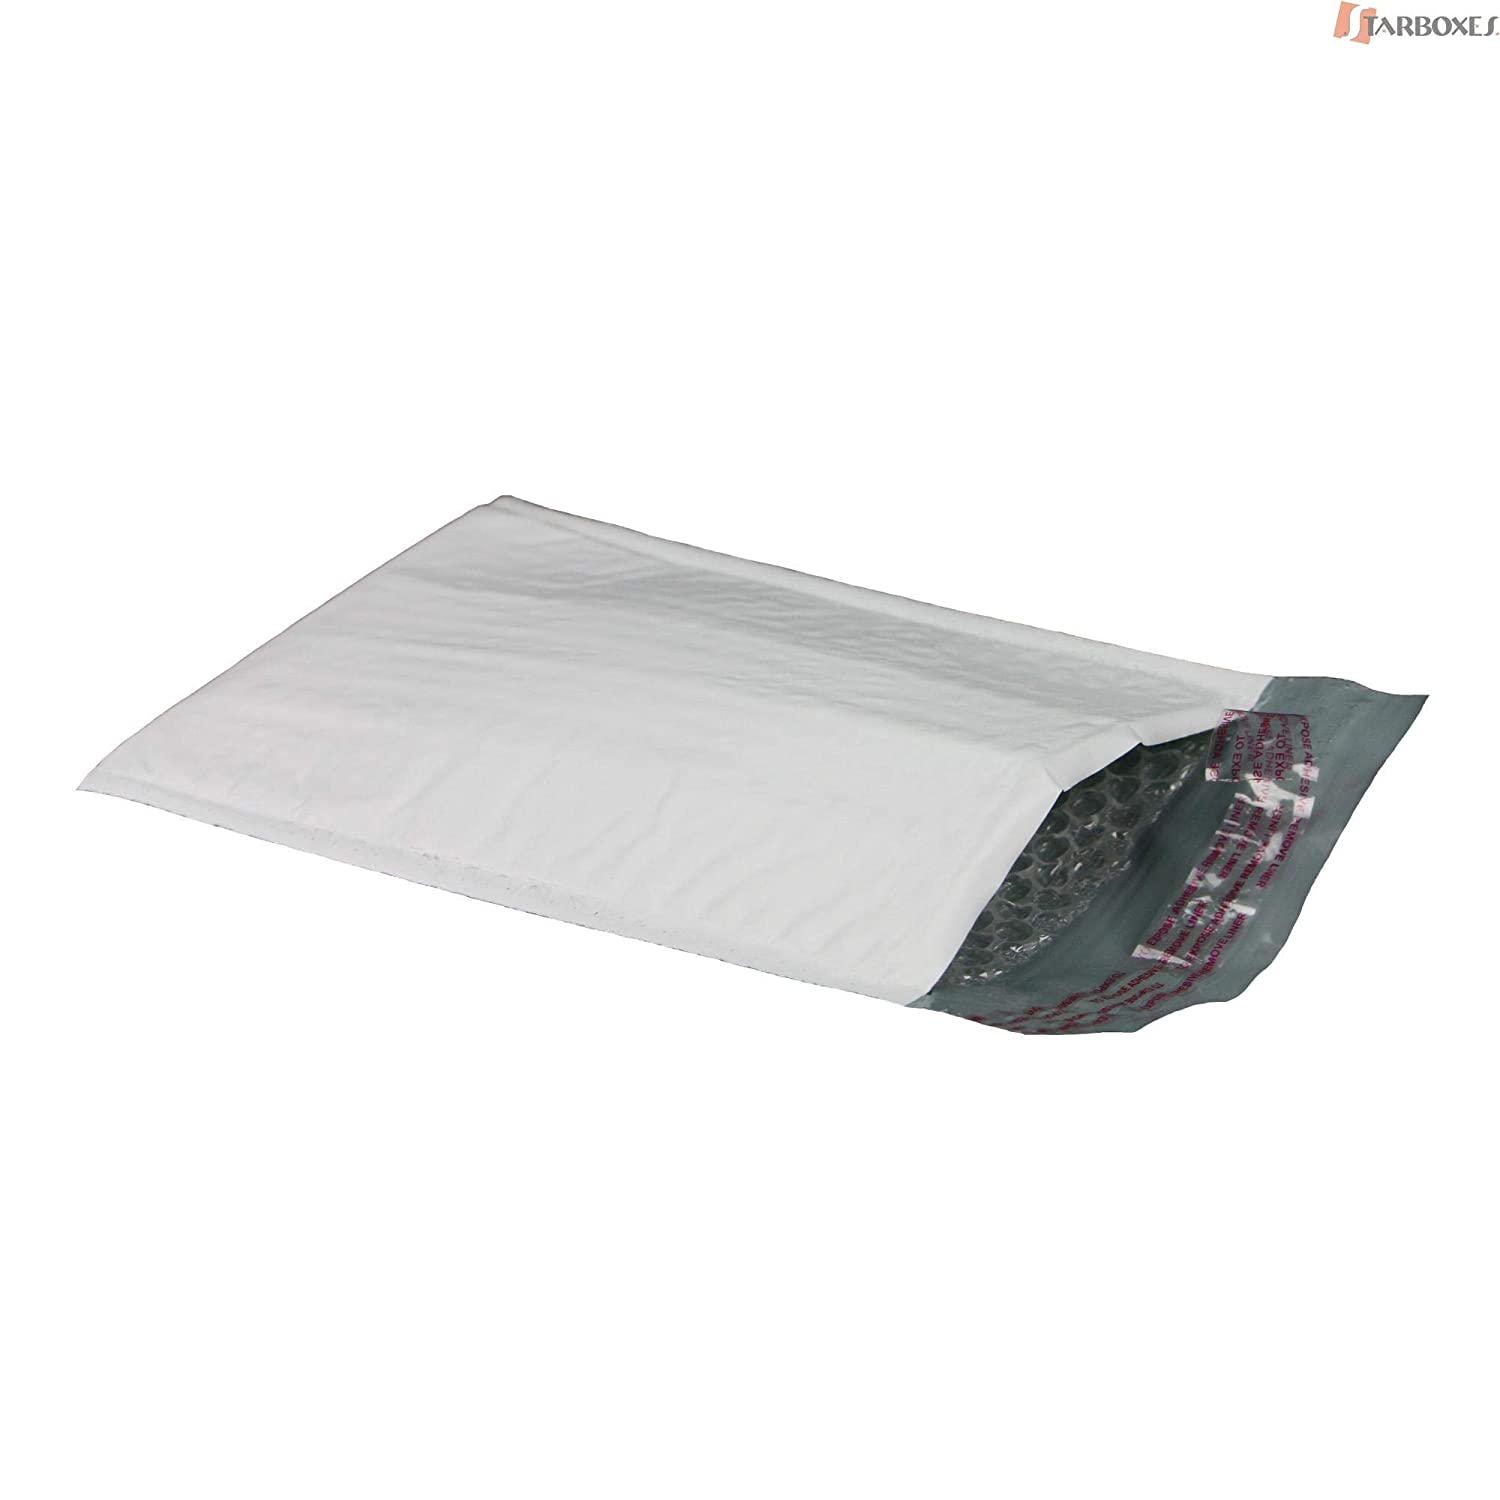 Poly Bubble Mailer 7.25X12 #1 Pack of 100